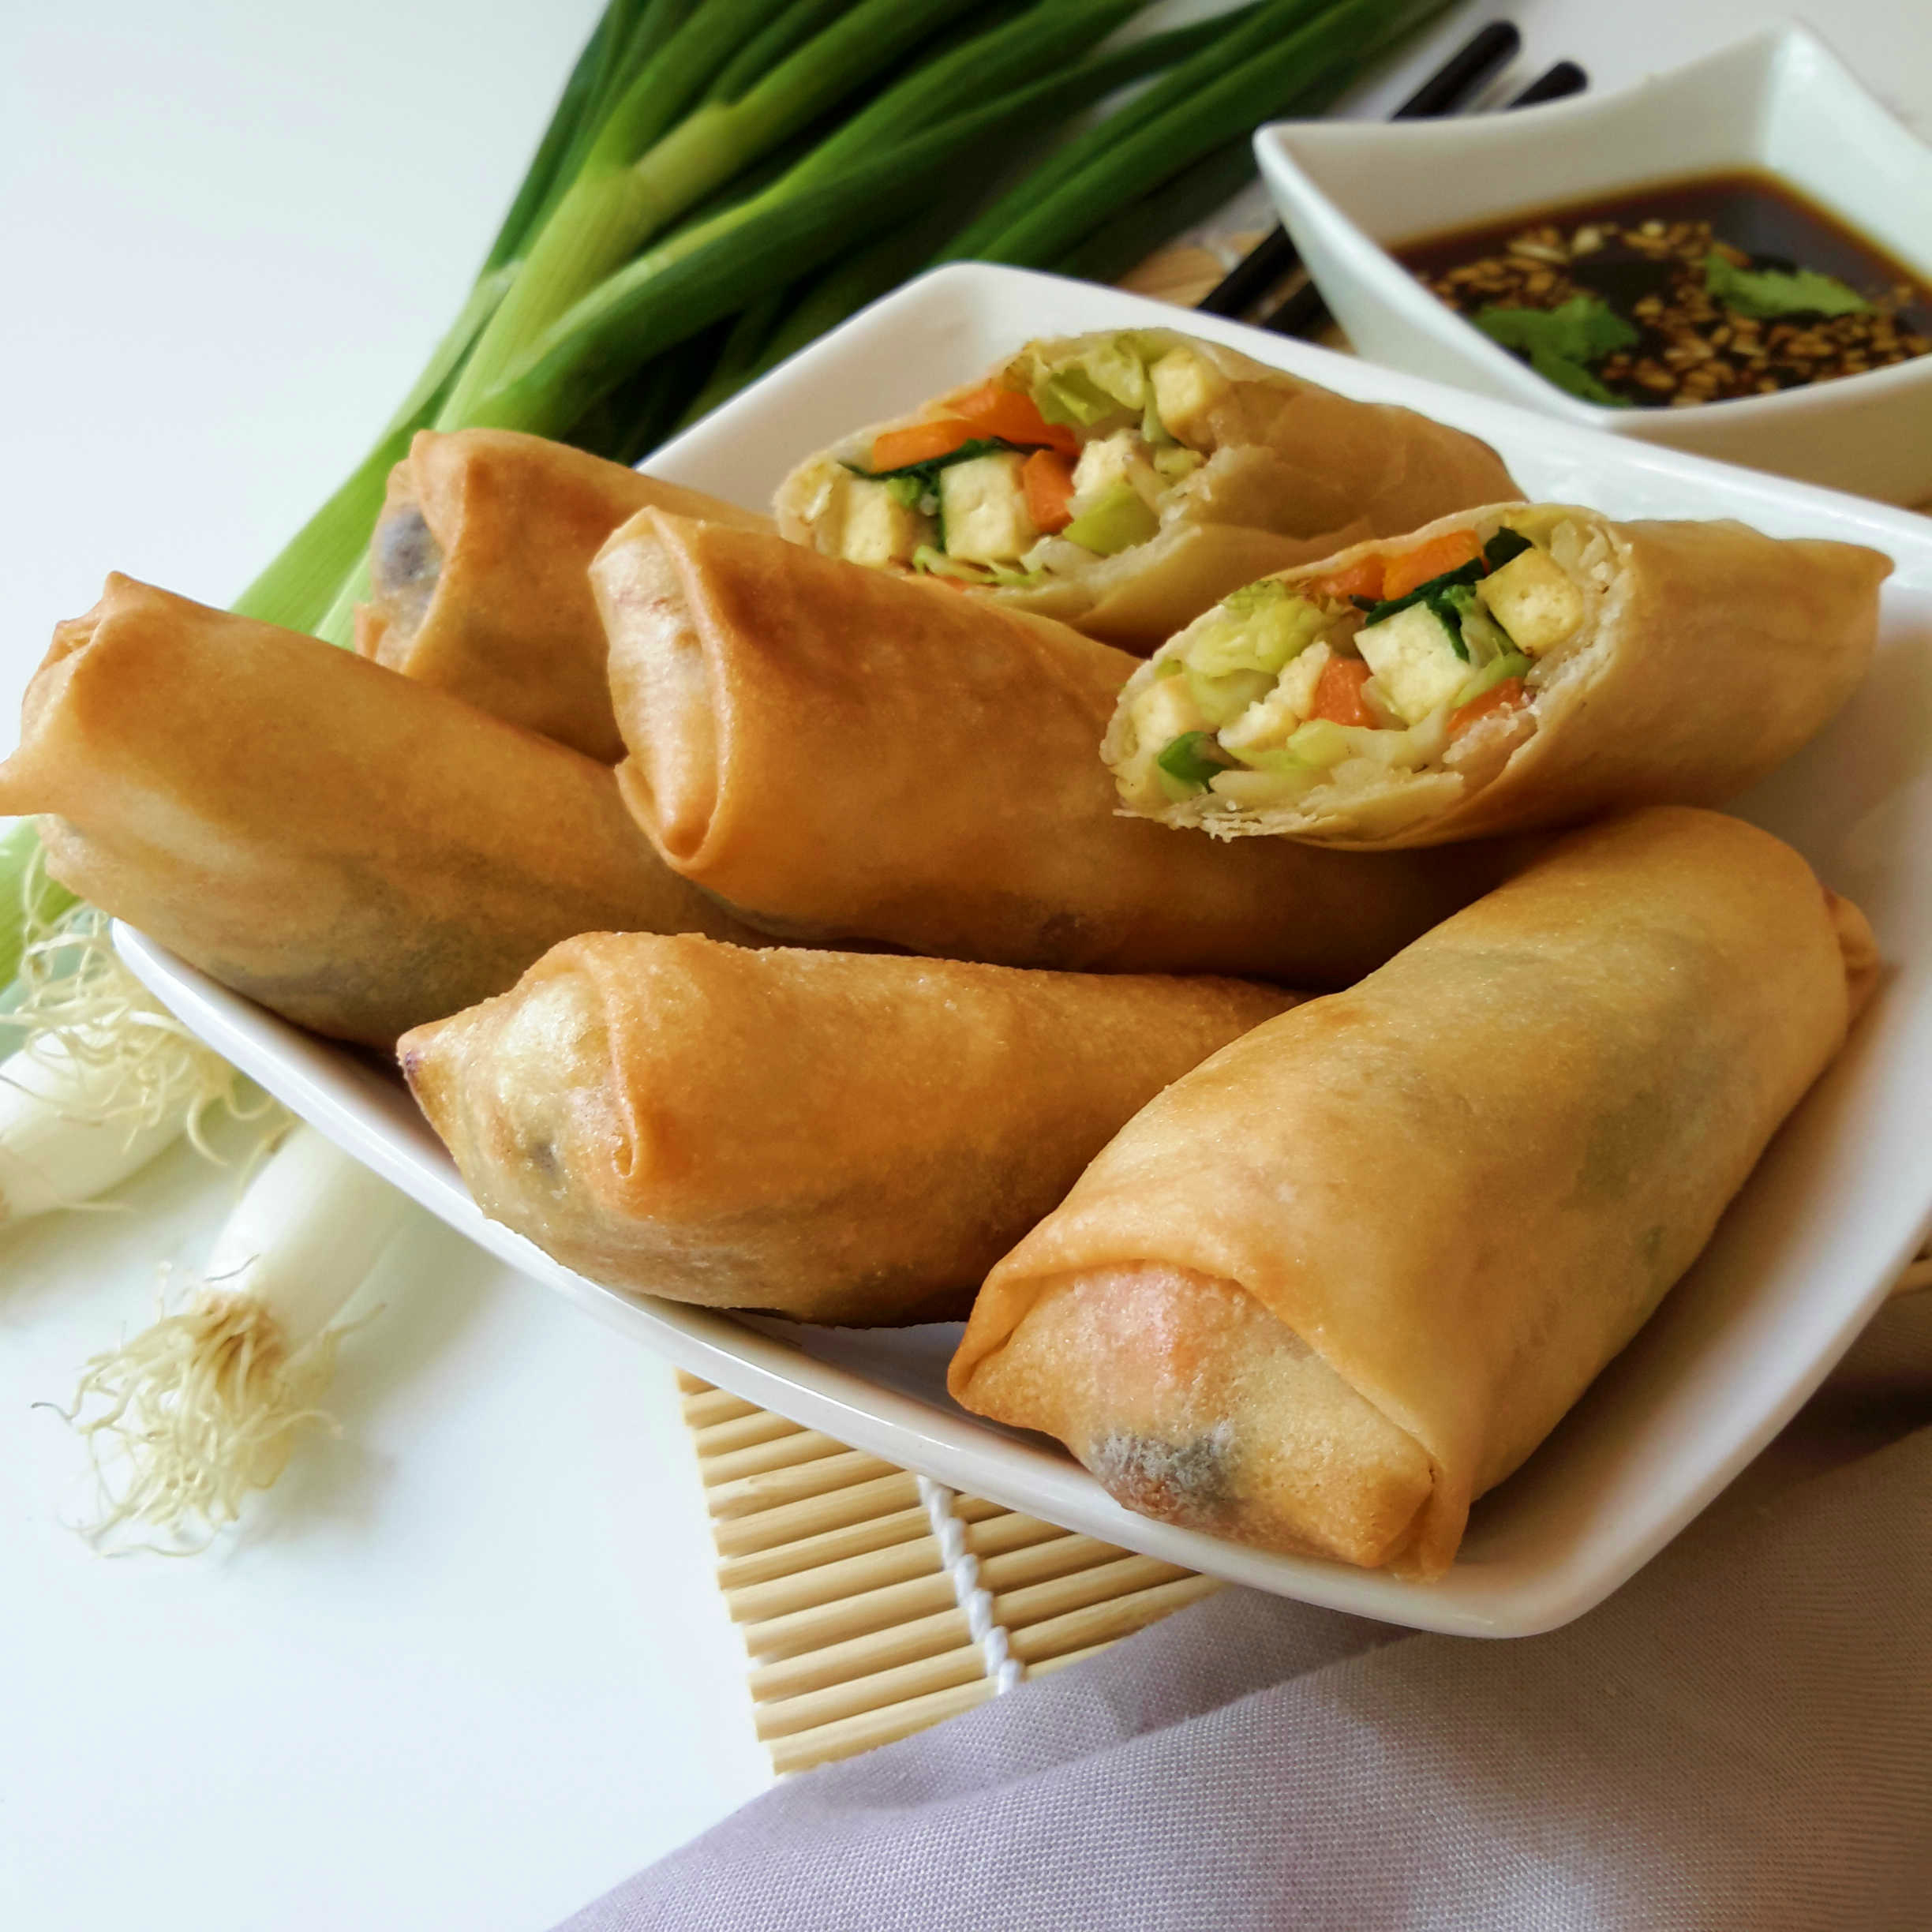 Vegetable Egg Rolls - Cilantro and Citronella